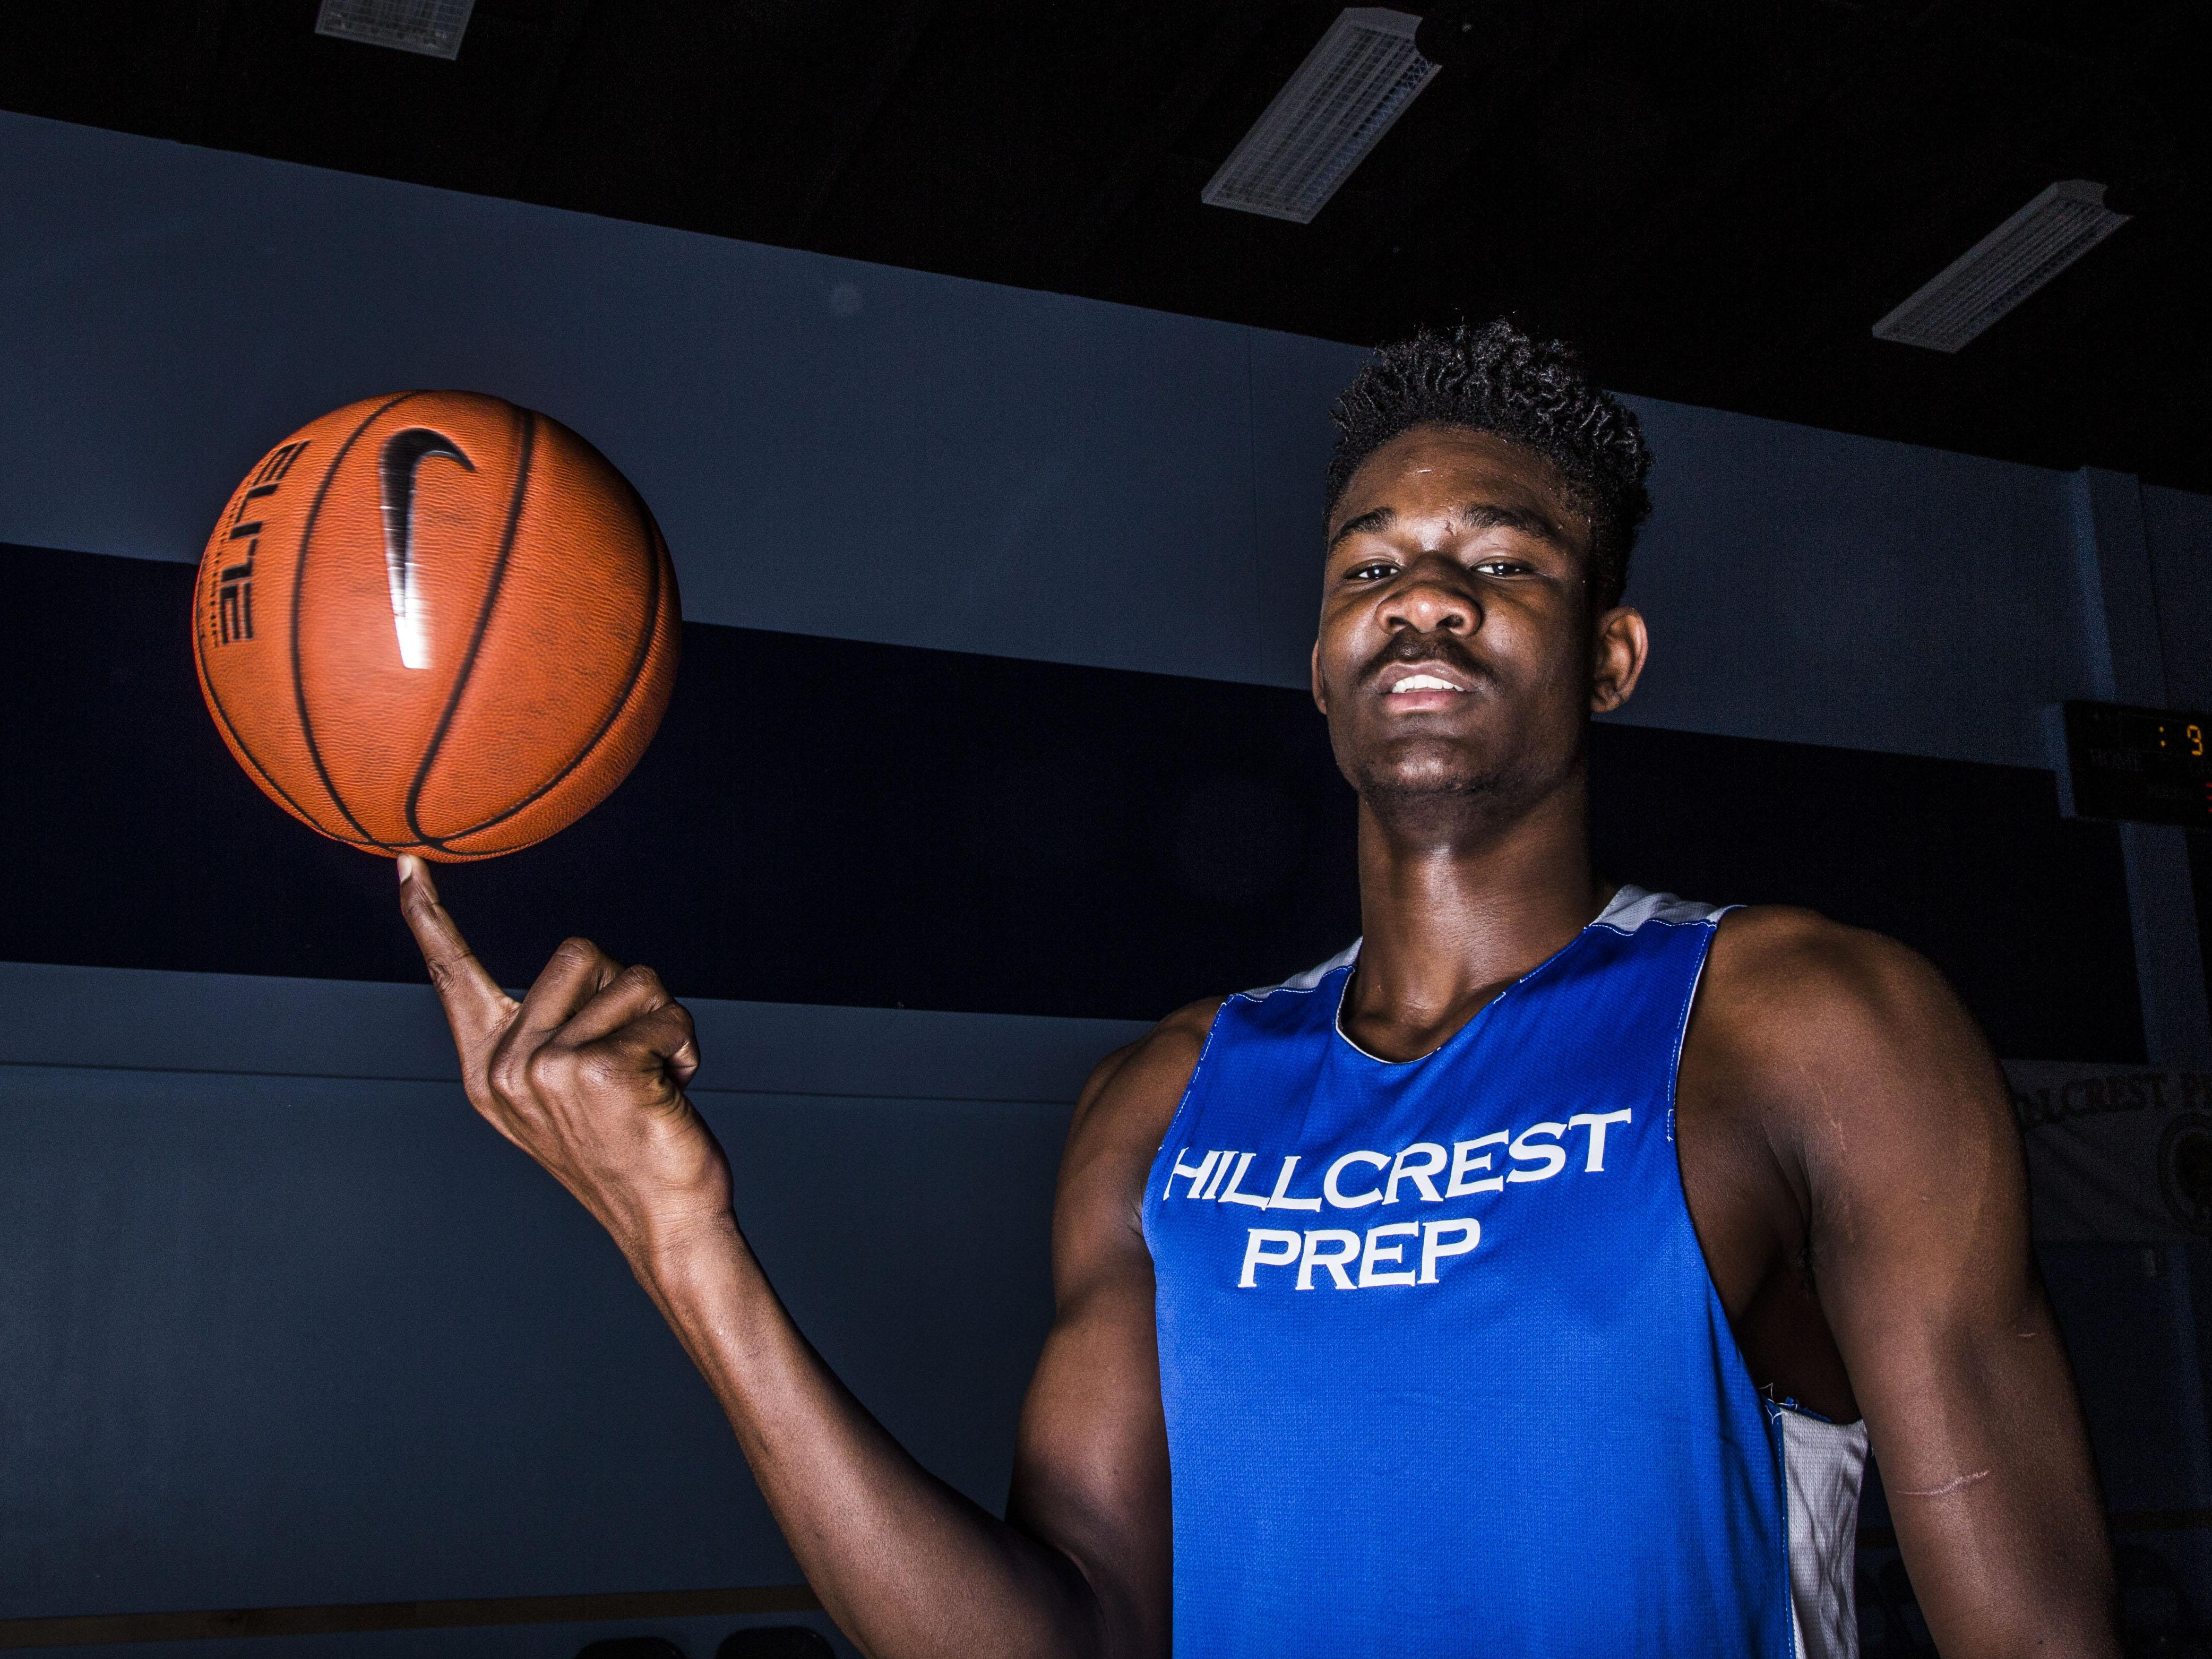 Hillcrest Prep junior DeAndre Ayton, a 7-foot-1 basketball player, is rated the No.1 player in the country.